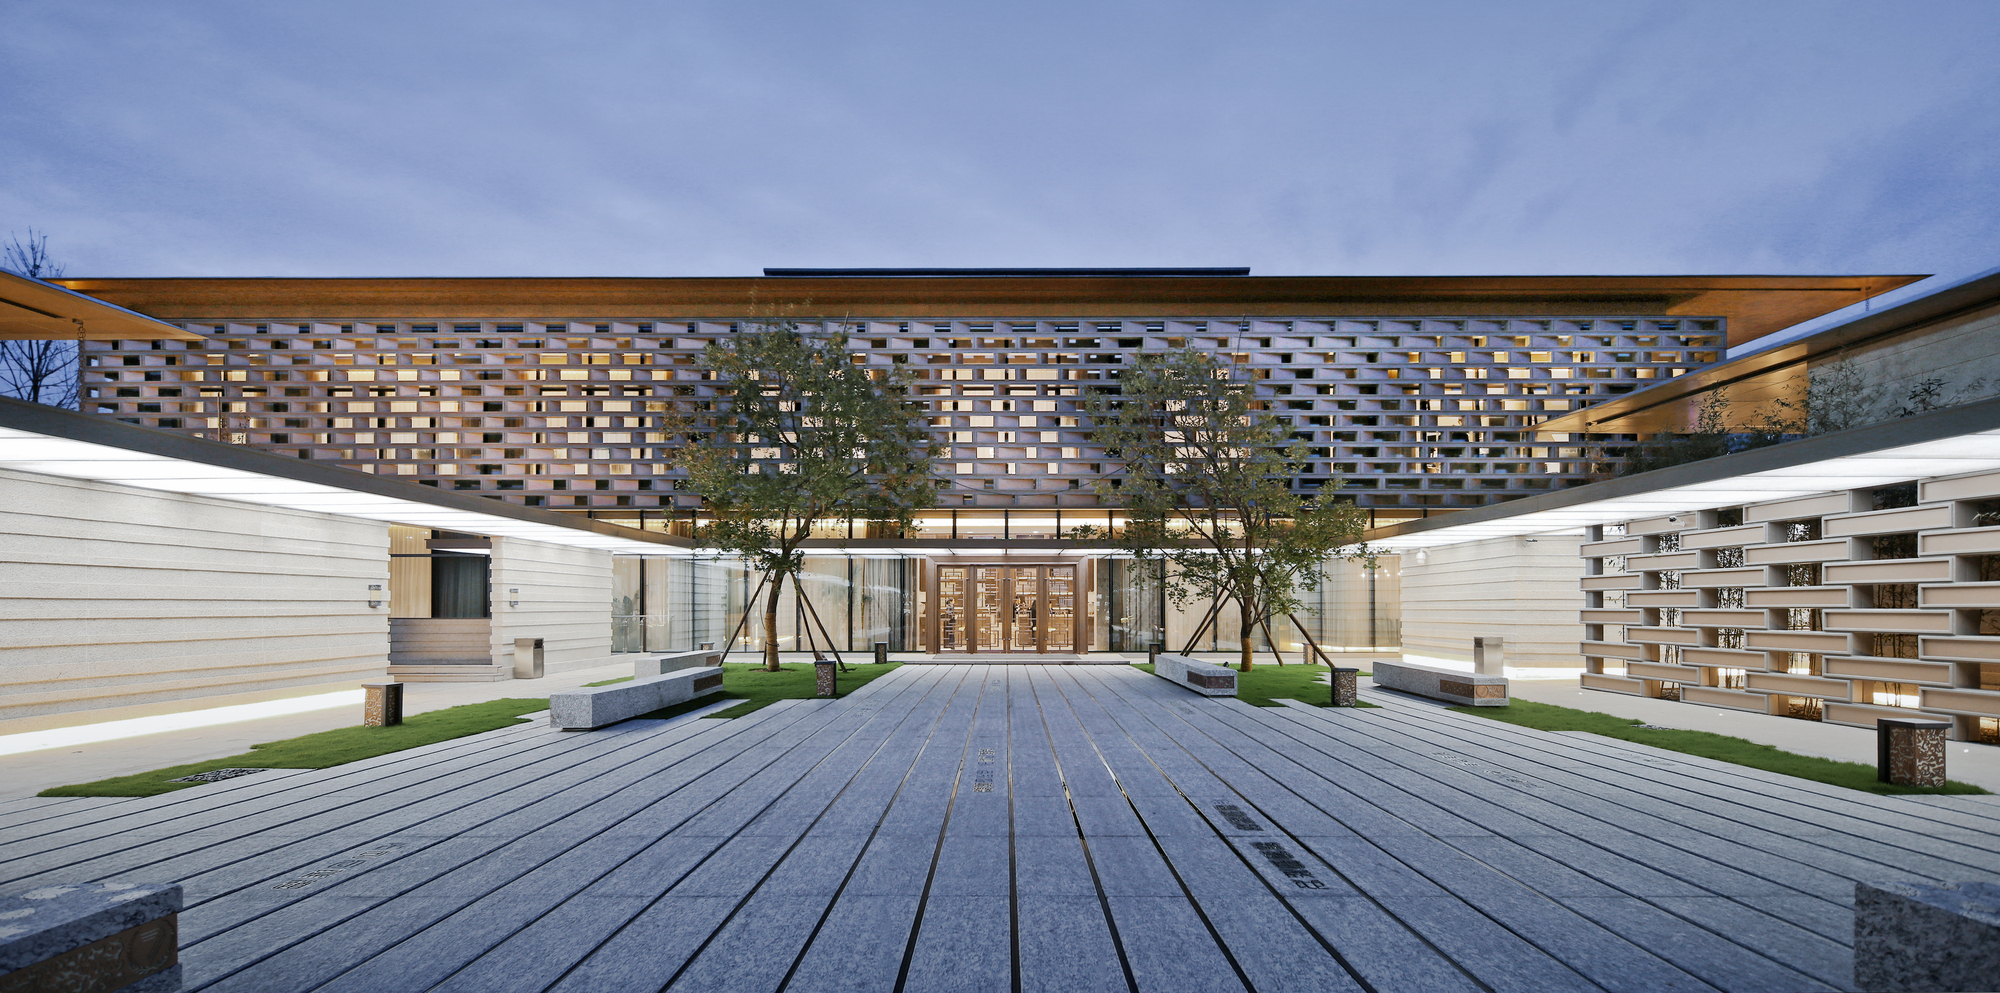 Tianjin luneng taishan college lacime architectural design archdaily - Architecture and design ...